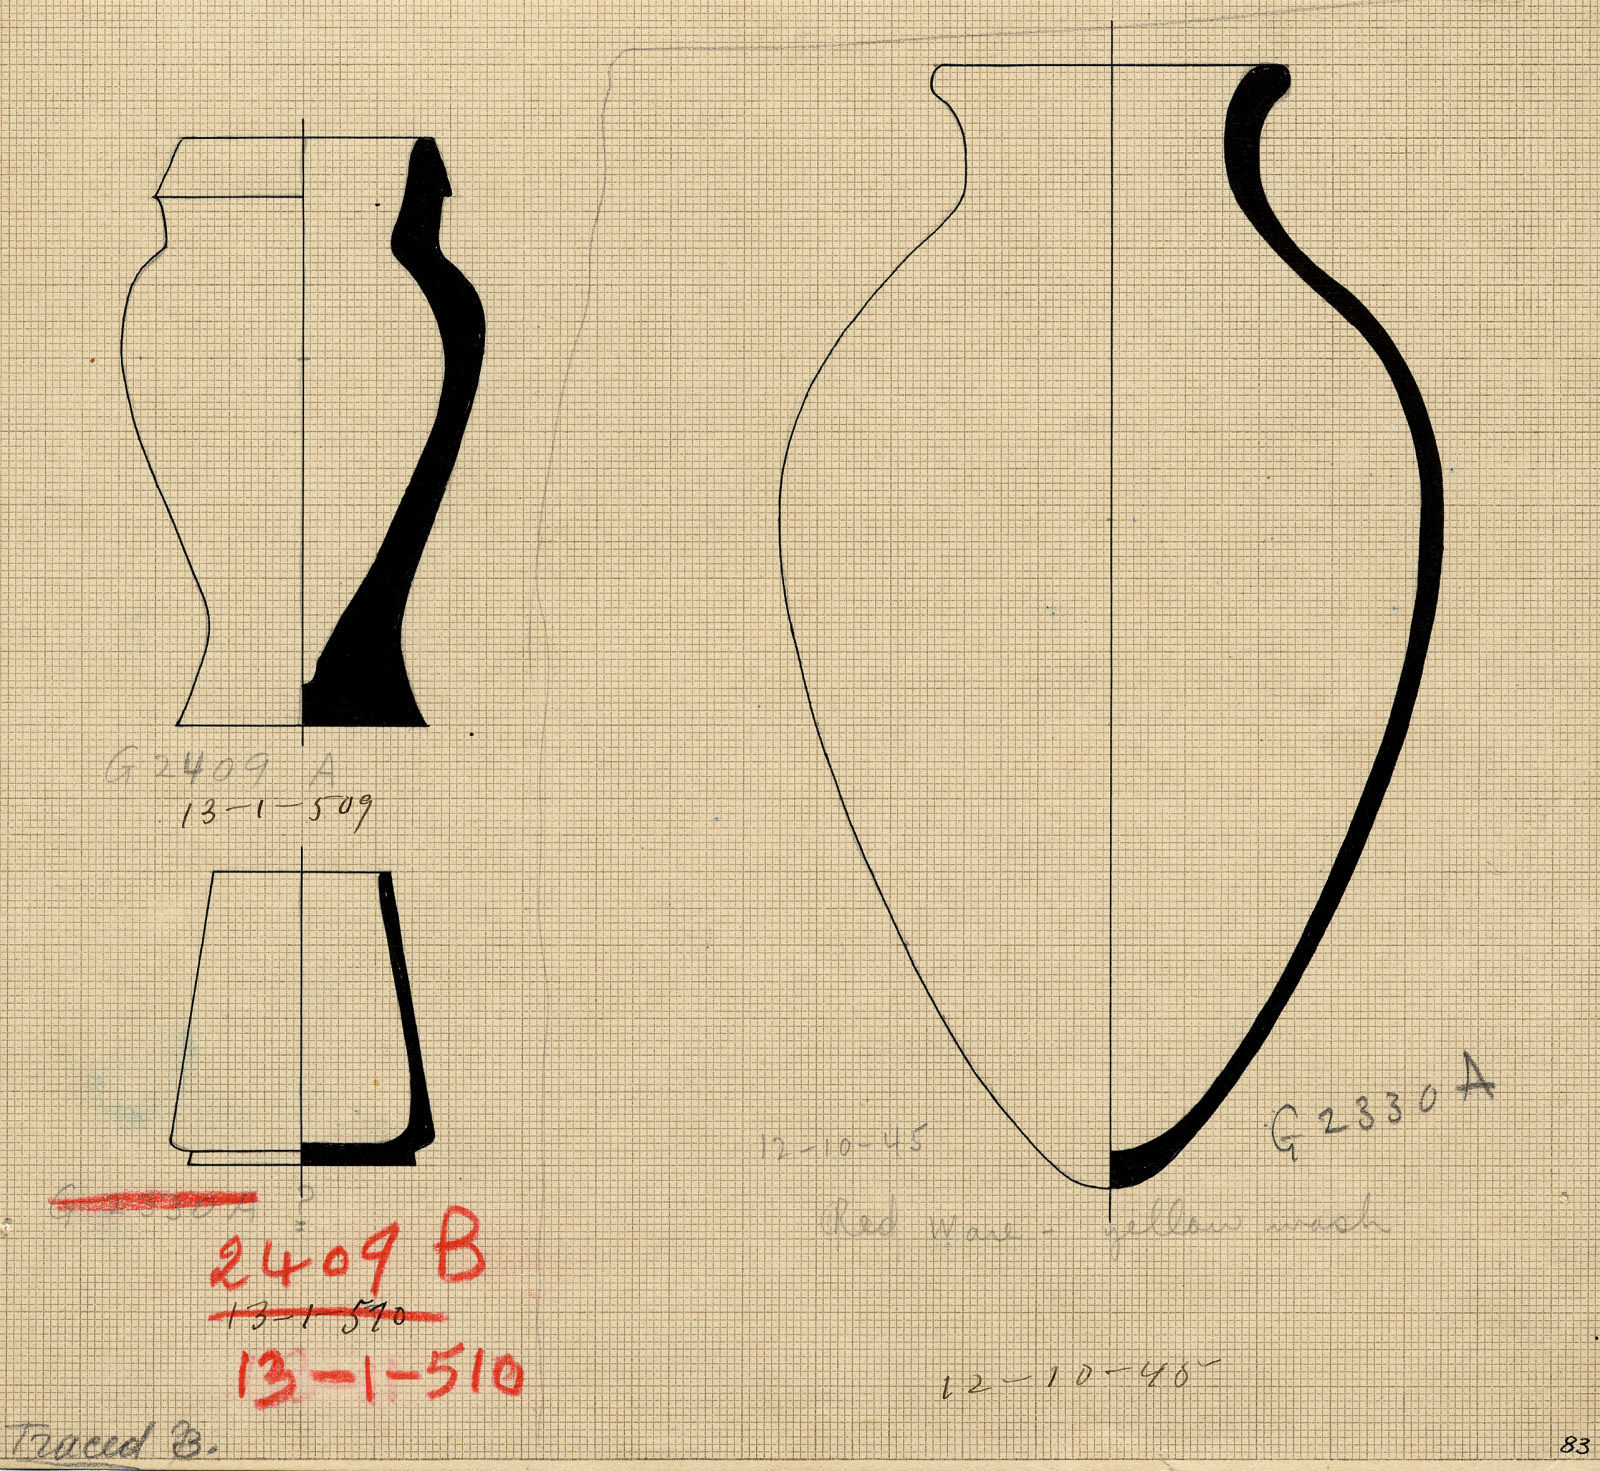 Drawings: Pottery, jars from G 2409, Shaft A-B, and G 2330 (= G 5380), Shaft A